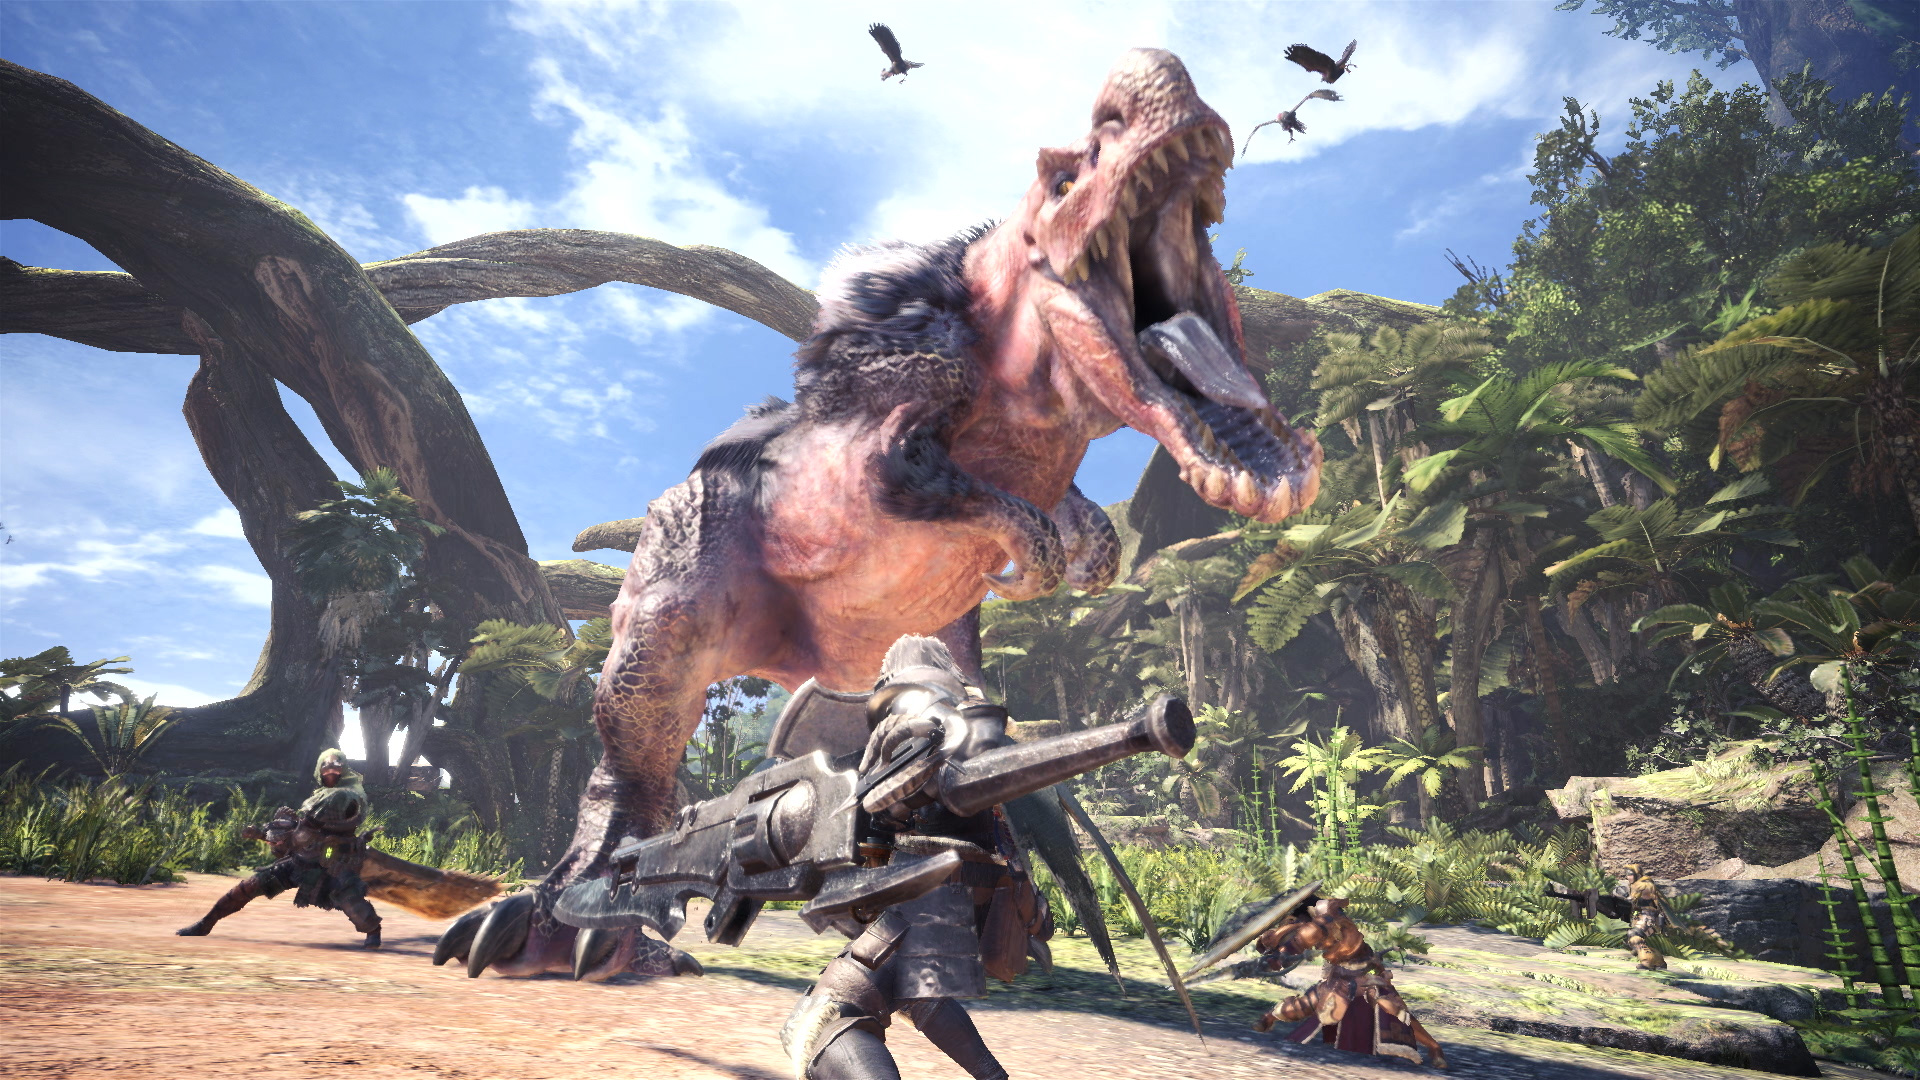 Monster Hunter World Beta Happening This Weekend, Here's What We'll Get